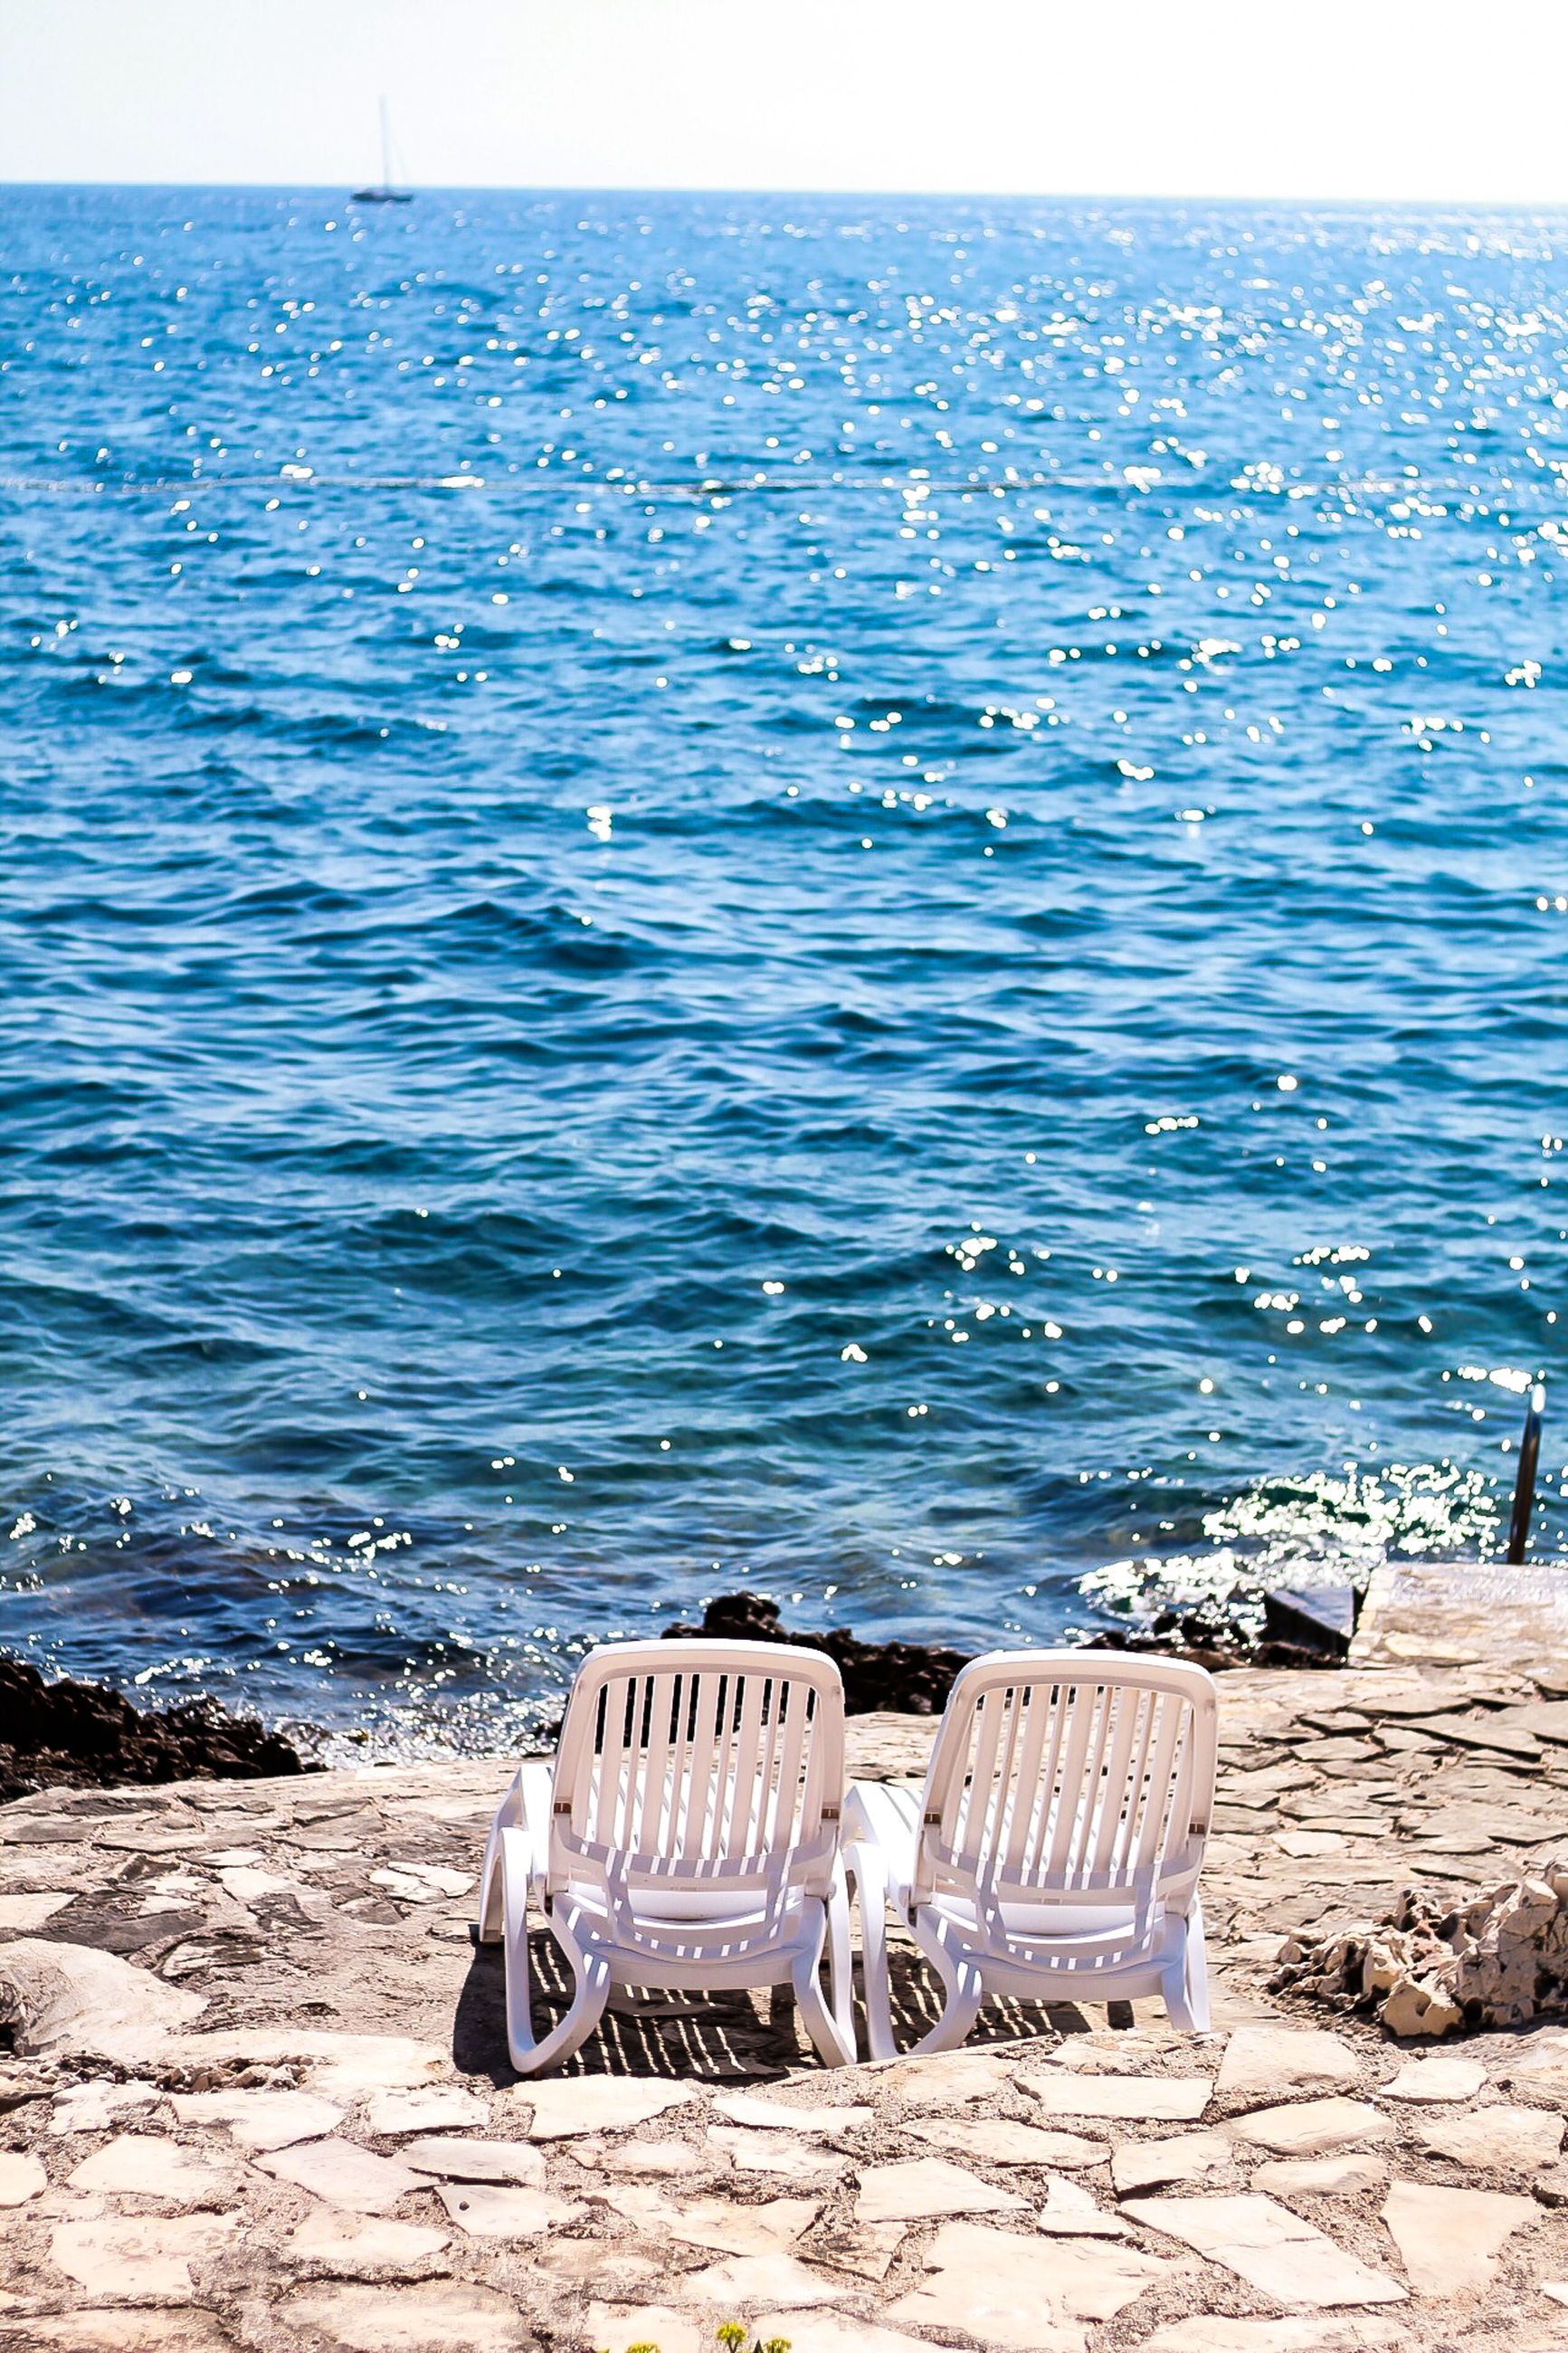 water, sea, horizon over water, beach, horizon, beauty in nature, tranquility, tranquil scene, nature, sky, chair, land, scenics - nature, sand, absence, idyllic, day, sunlight, seat, no people, outdoors